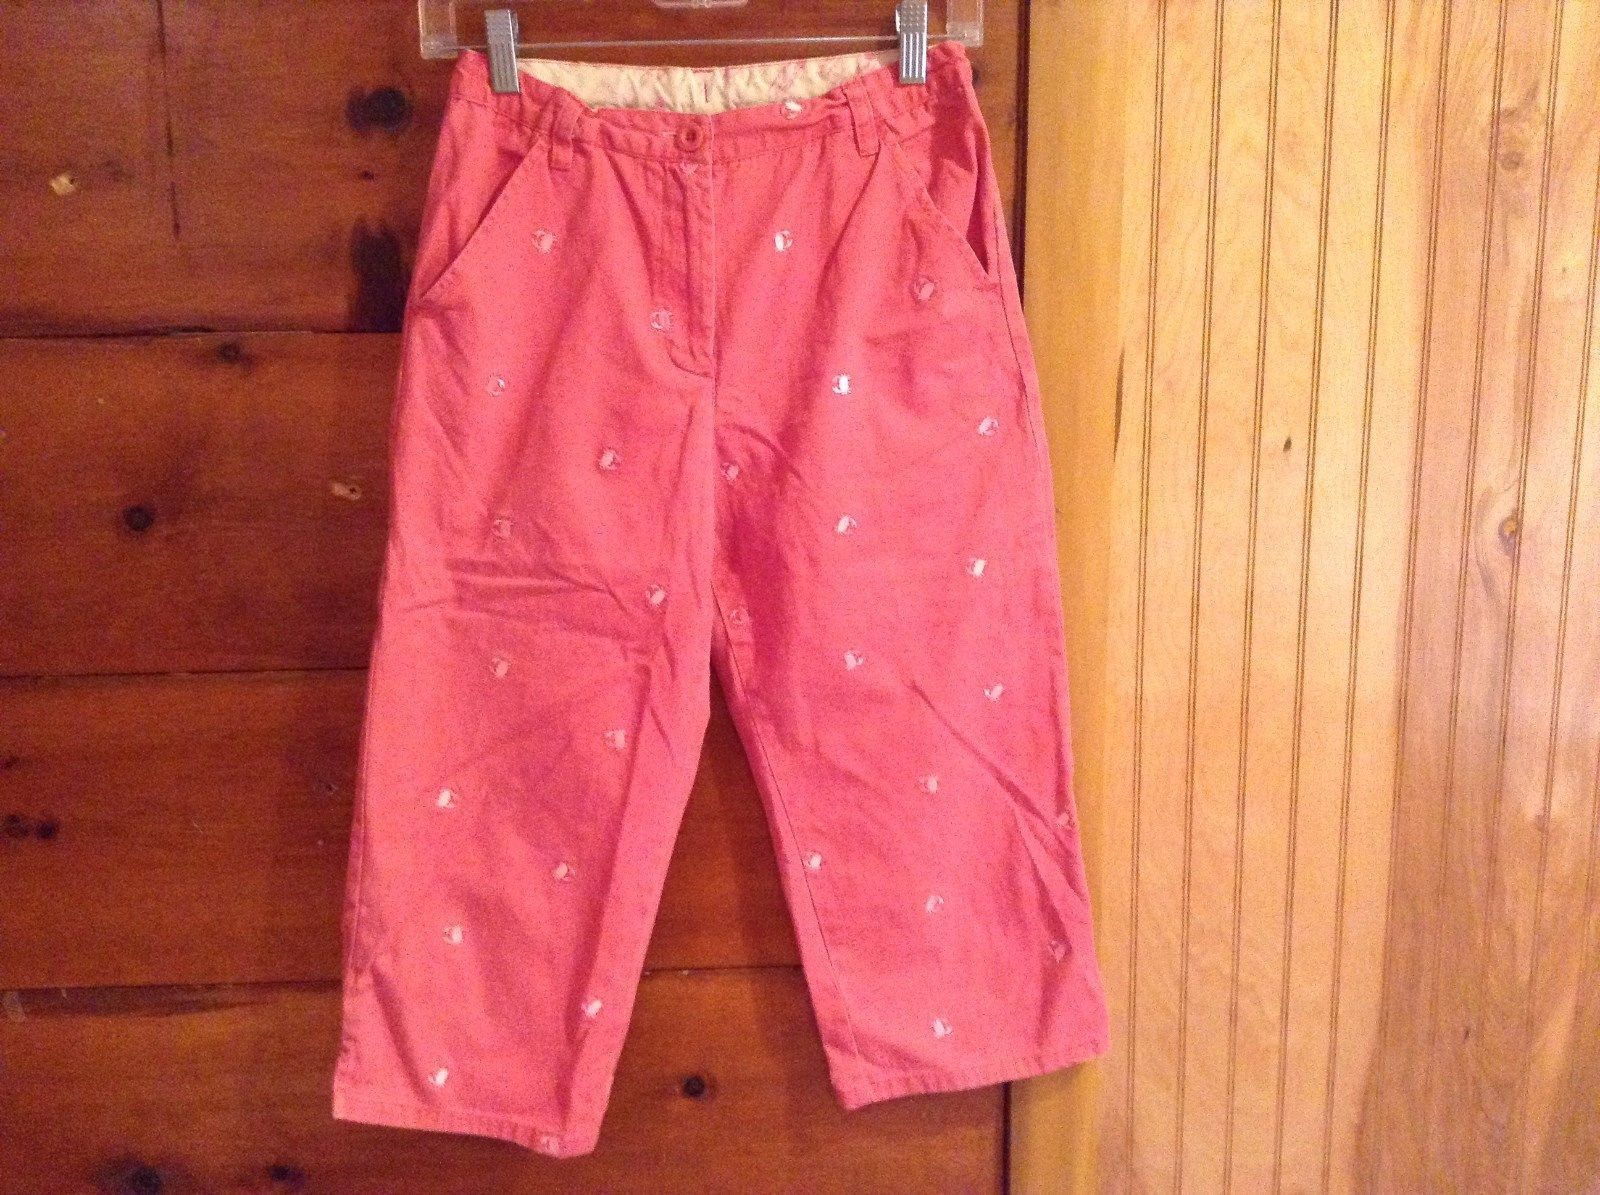 Cute Pink Pants with Crabs L L Bean 100 Percent Cotton Size 16